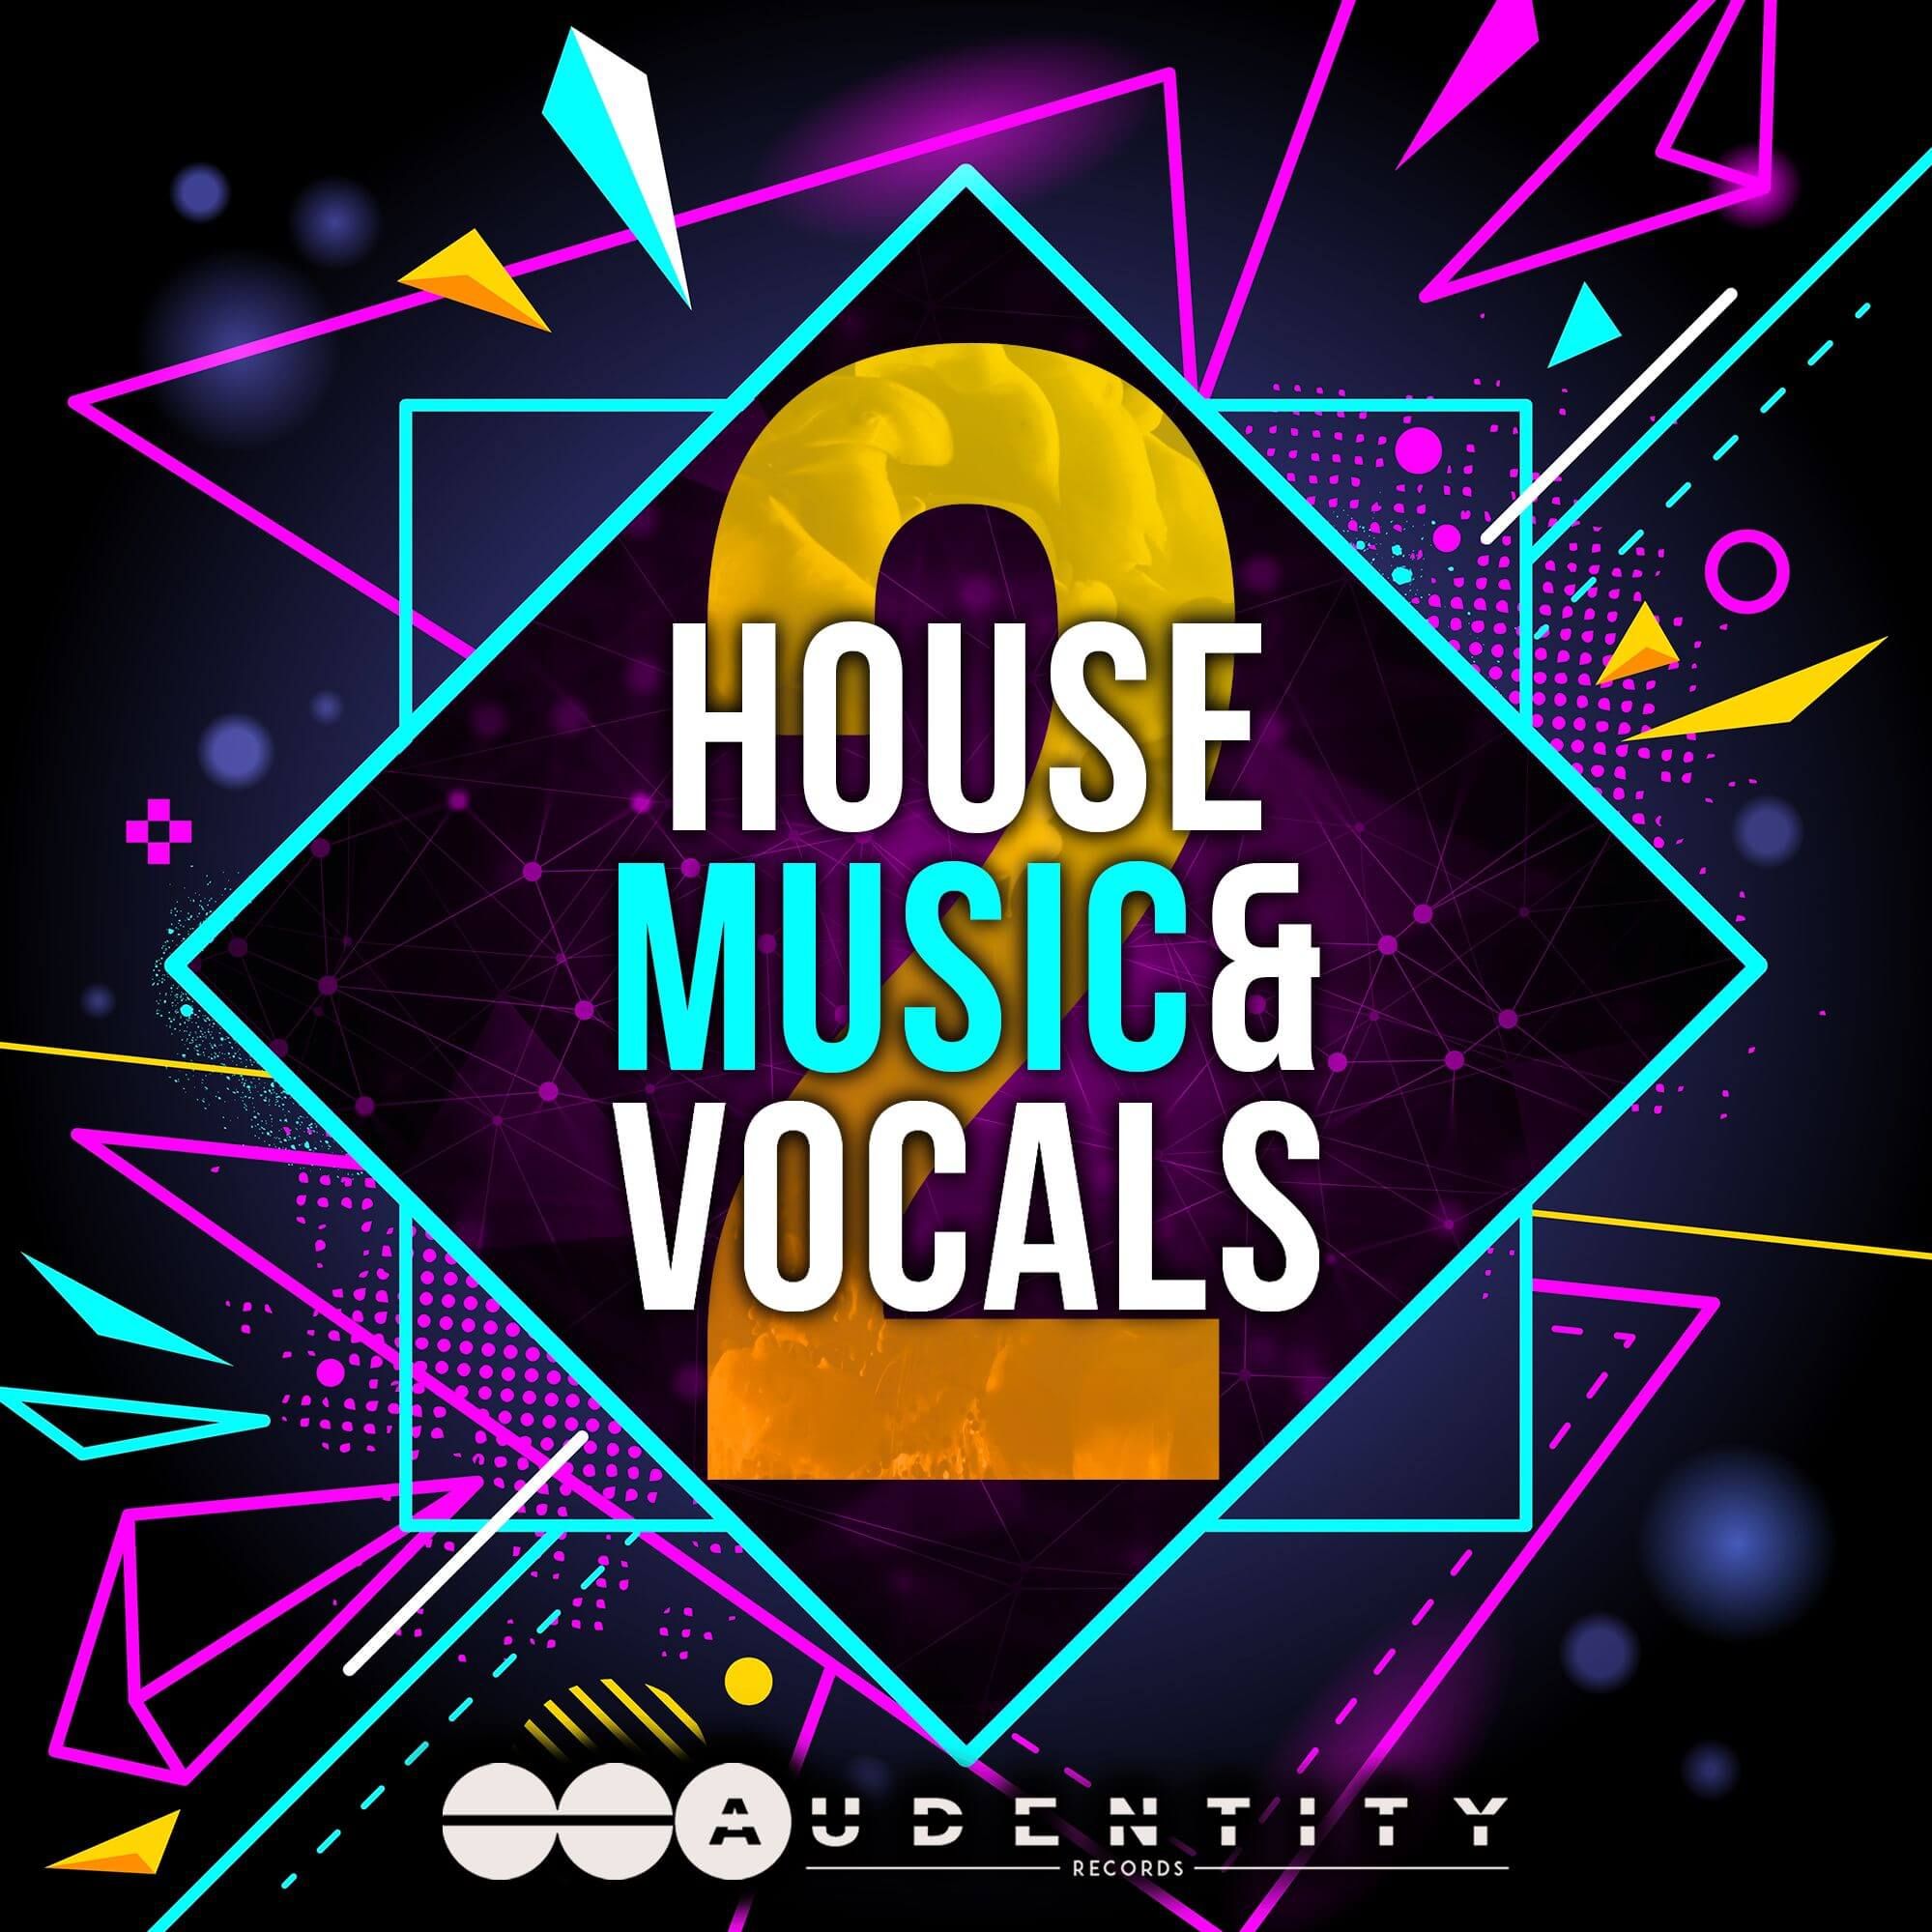 House music vocals 2 and dark techno 5 by audentity records for House music records